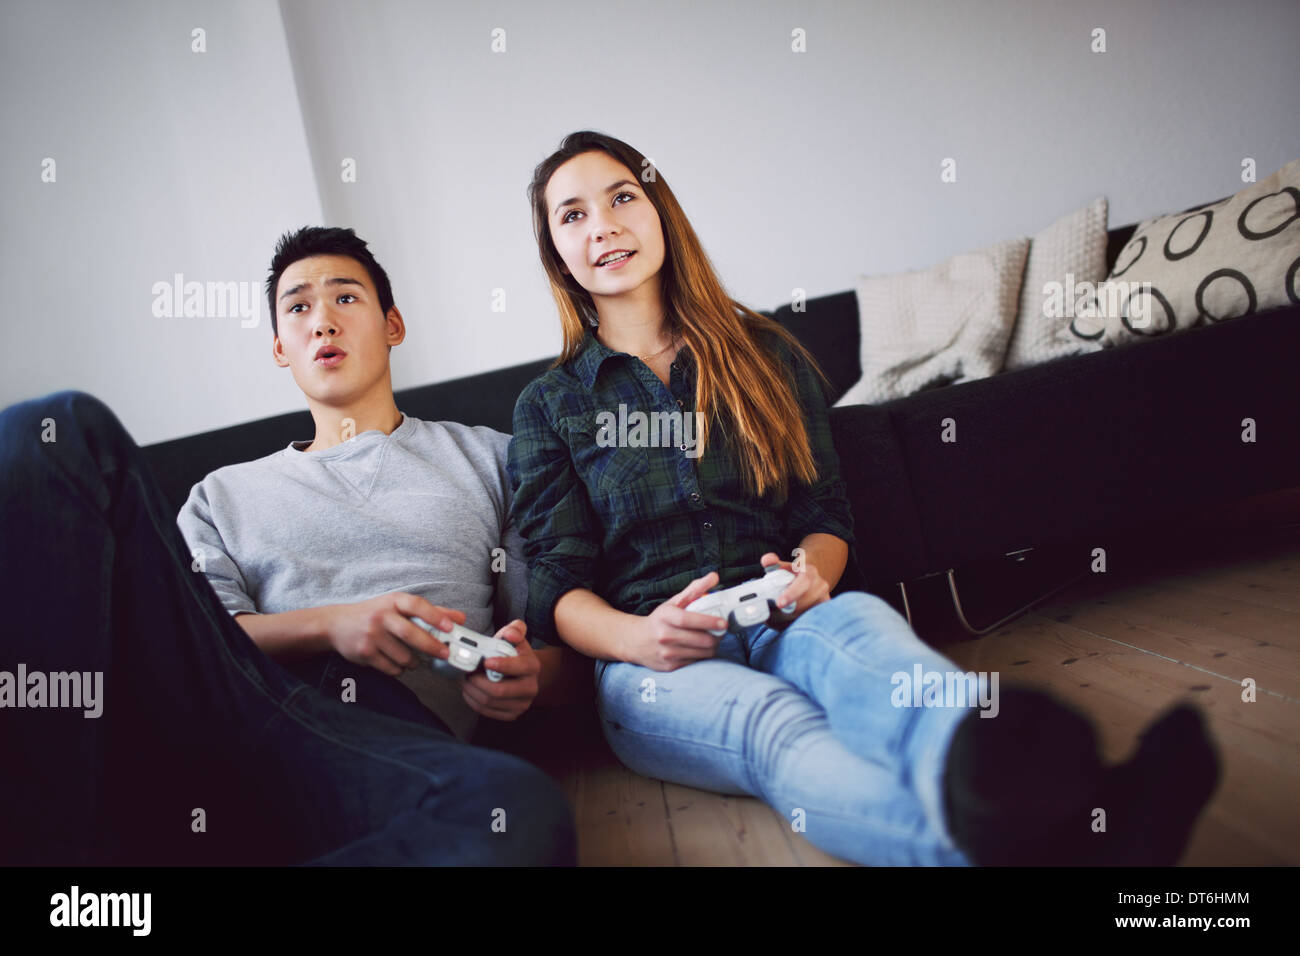 Young couple playing video games together while sitting in their living room. Mixed race teenage couple holding - Stock Image